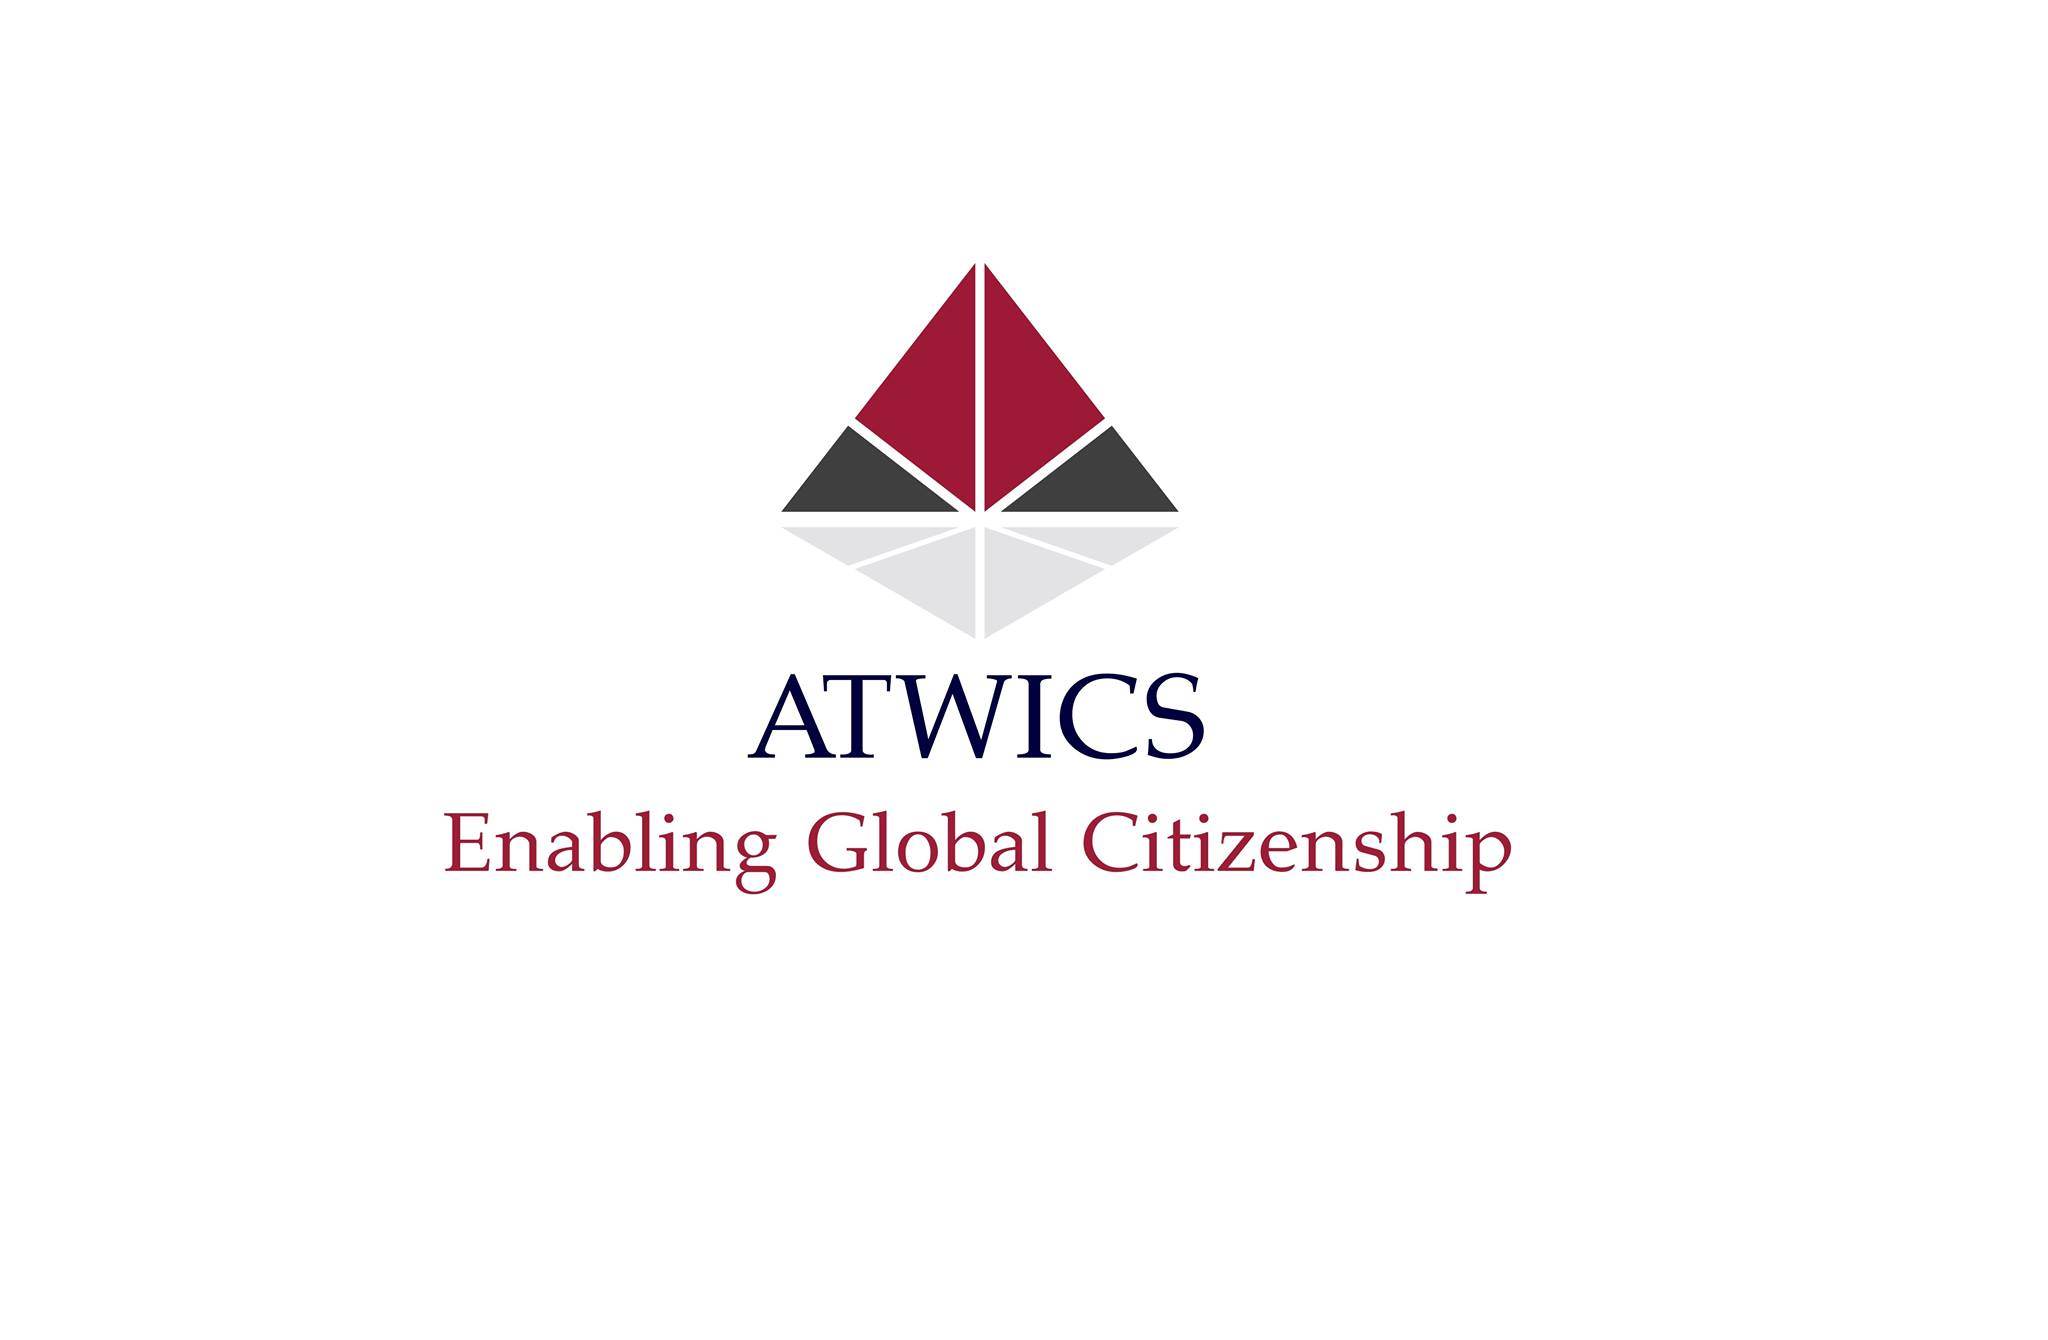 ATWICS Group